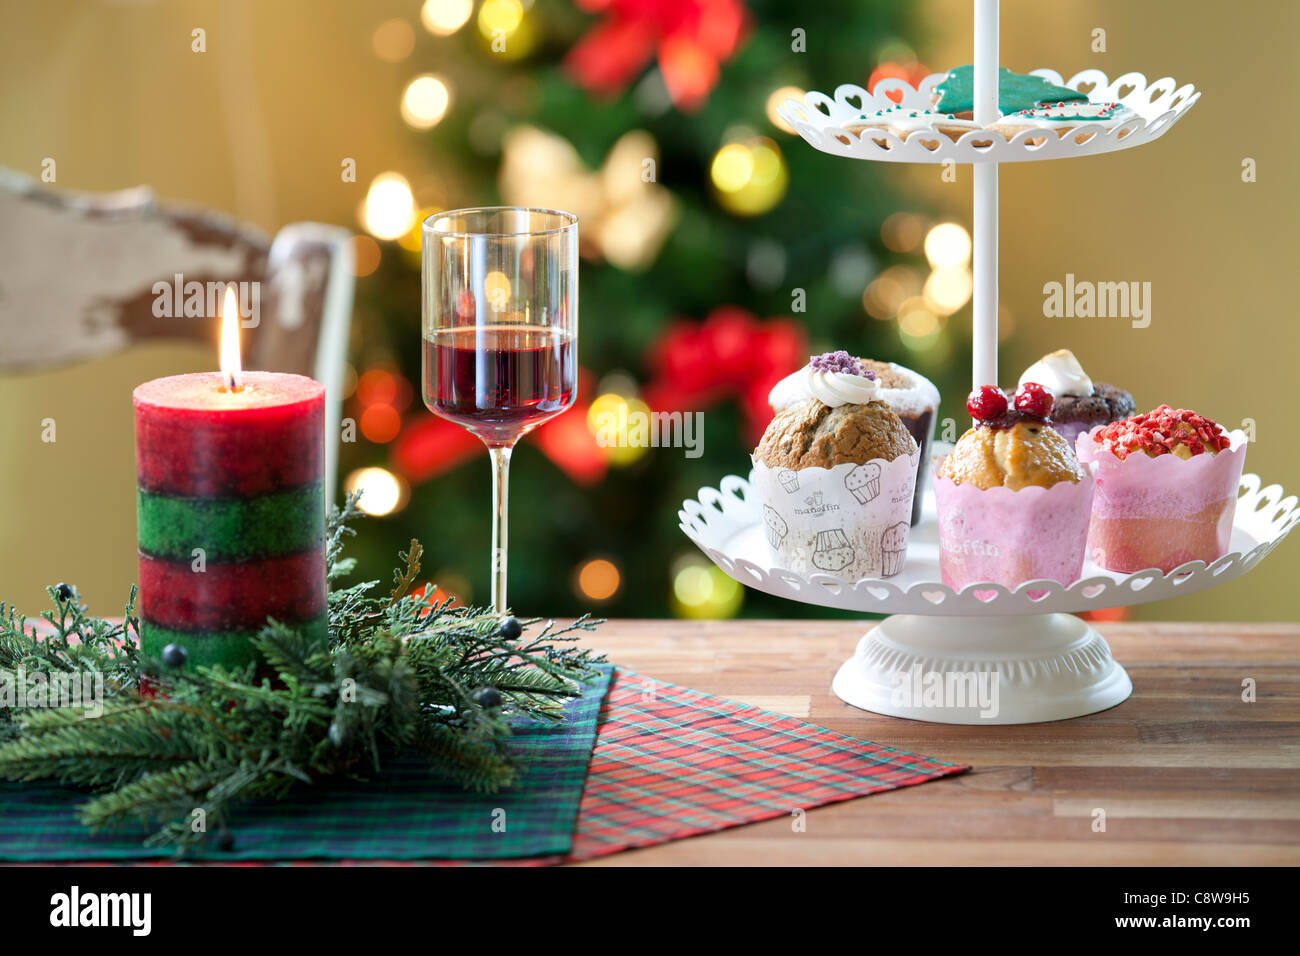 Decorative Christmas Candle, Wingless And Cup Cake - Stock Image